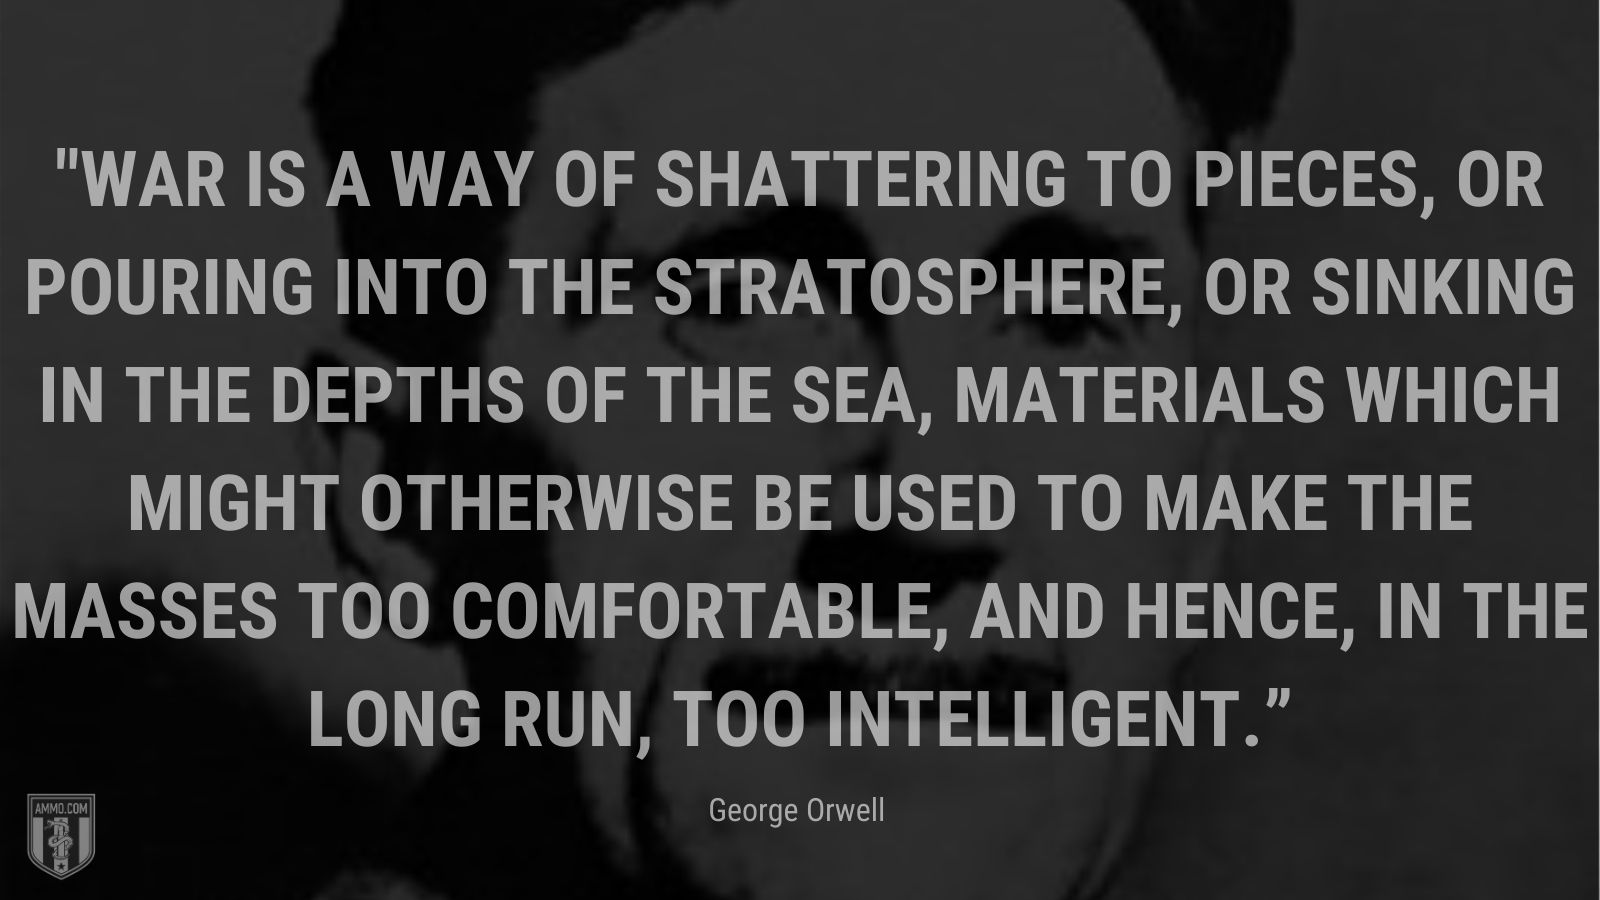 """""""War is a way of shattering to pieces, or pouring into the stratosphere, or sinking in the depths of the sea, materials which might otherwise be used to make the masses too comfortable, and hence, in the long run, too intelligent."""" -"""